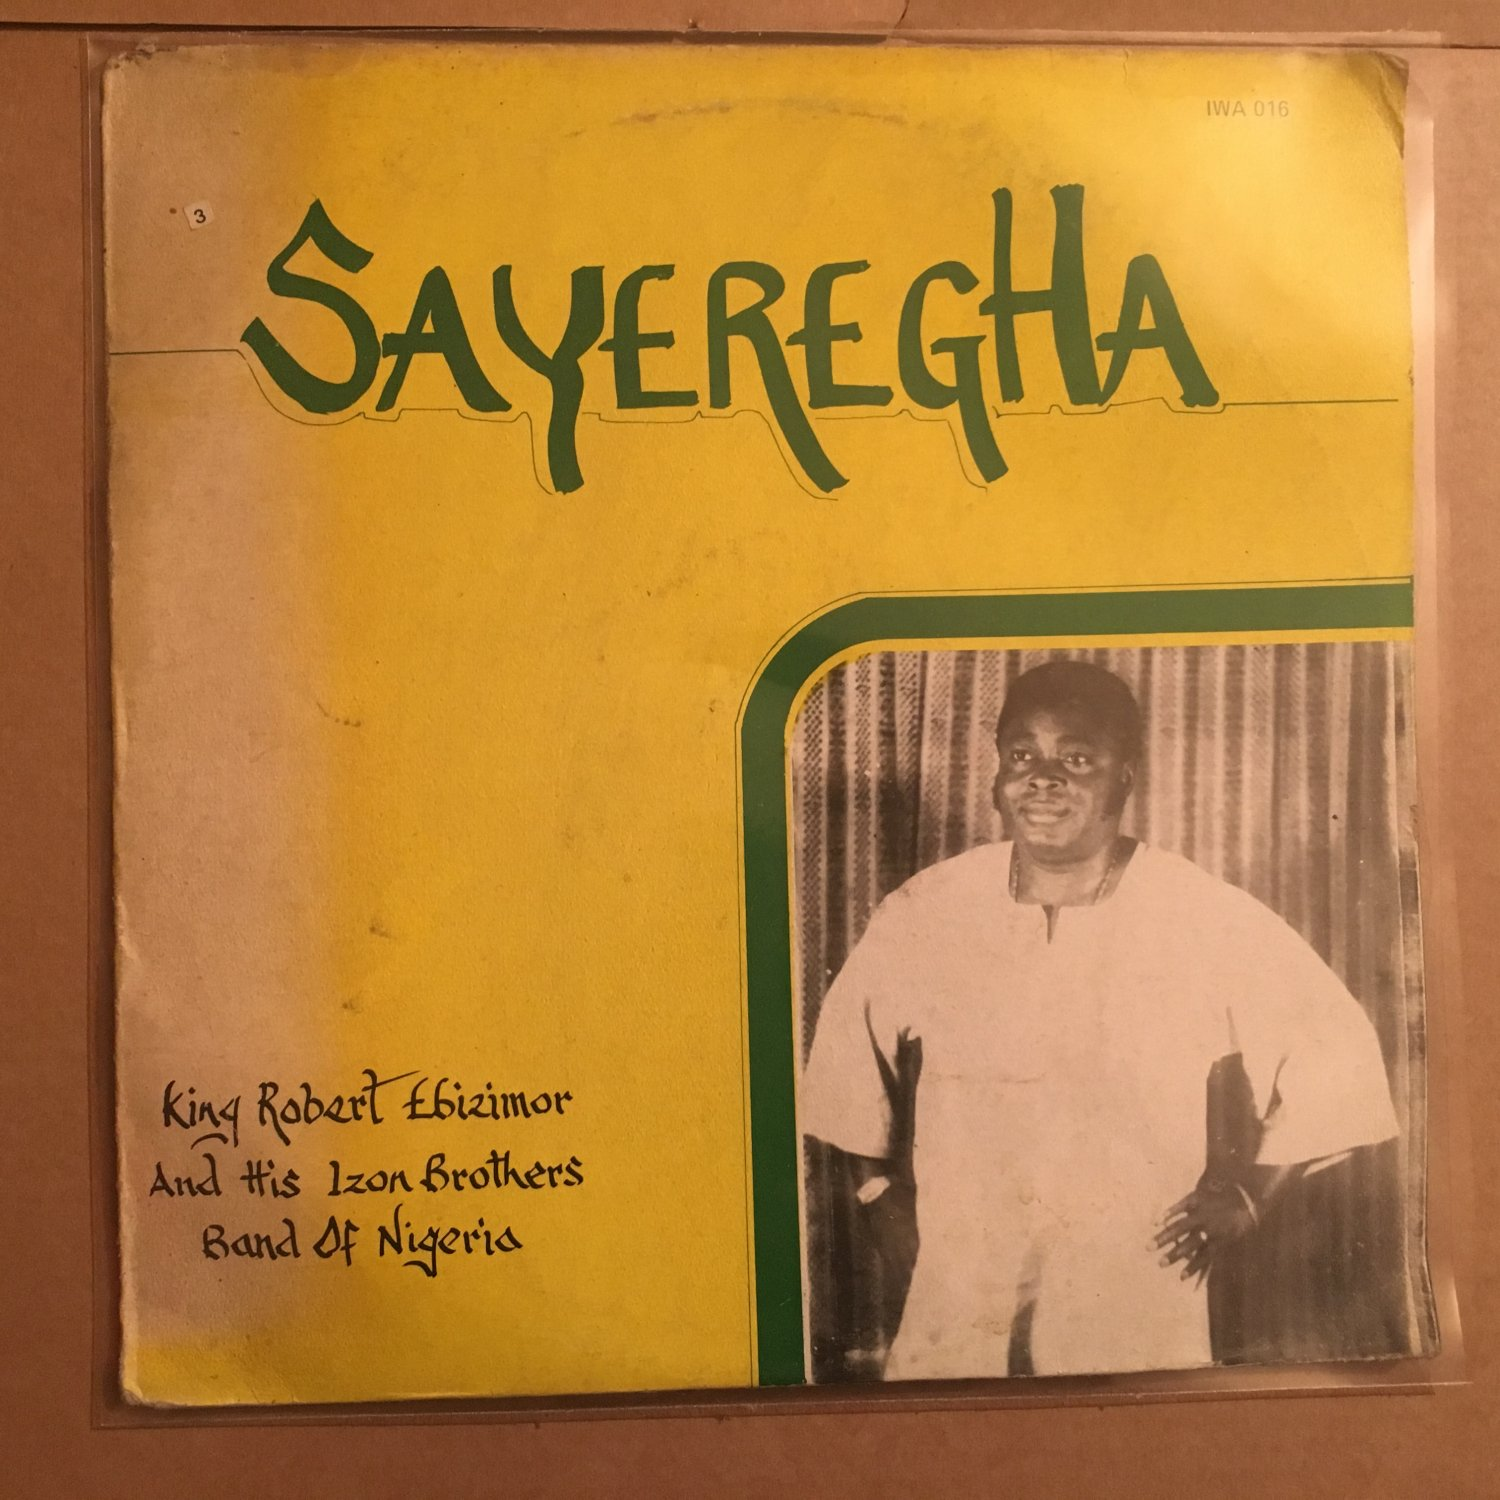 KING ROBERT EBIZIMOR & HIS IZON BROTHERS BAND LP sayeregha NIGERIA mp3 LISTEN